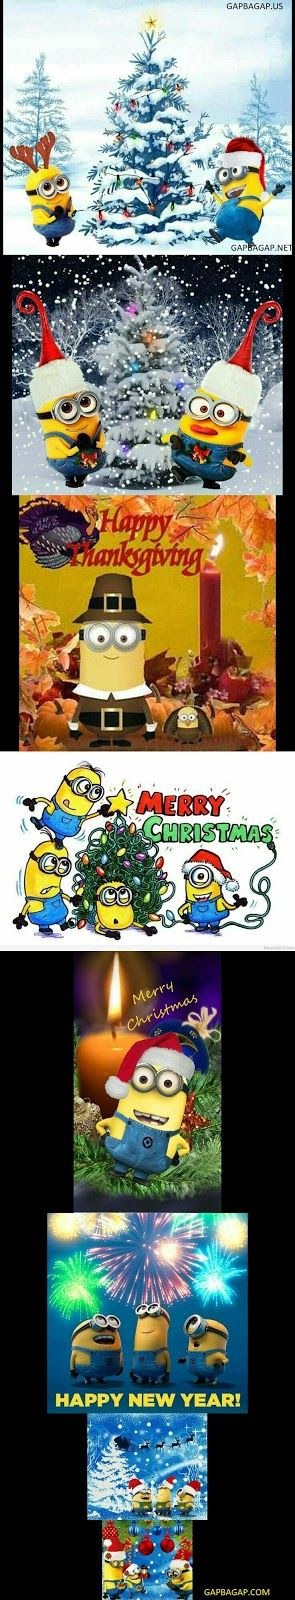 Merry Christmas Collection From Around The World By Minions